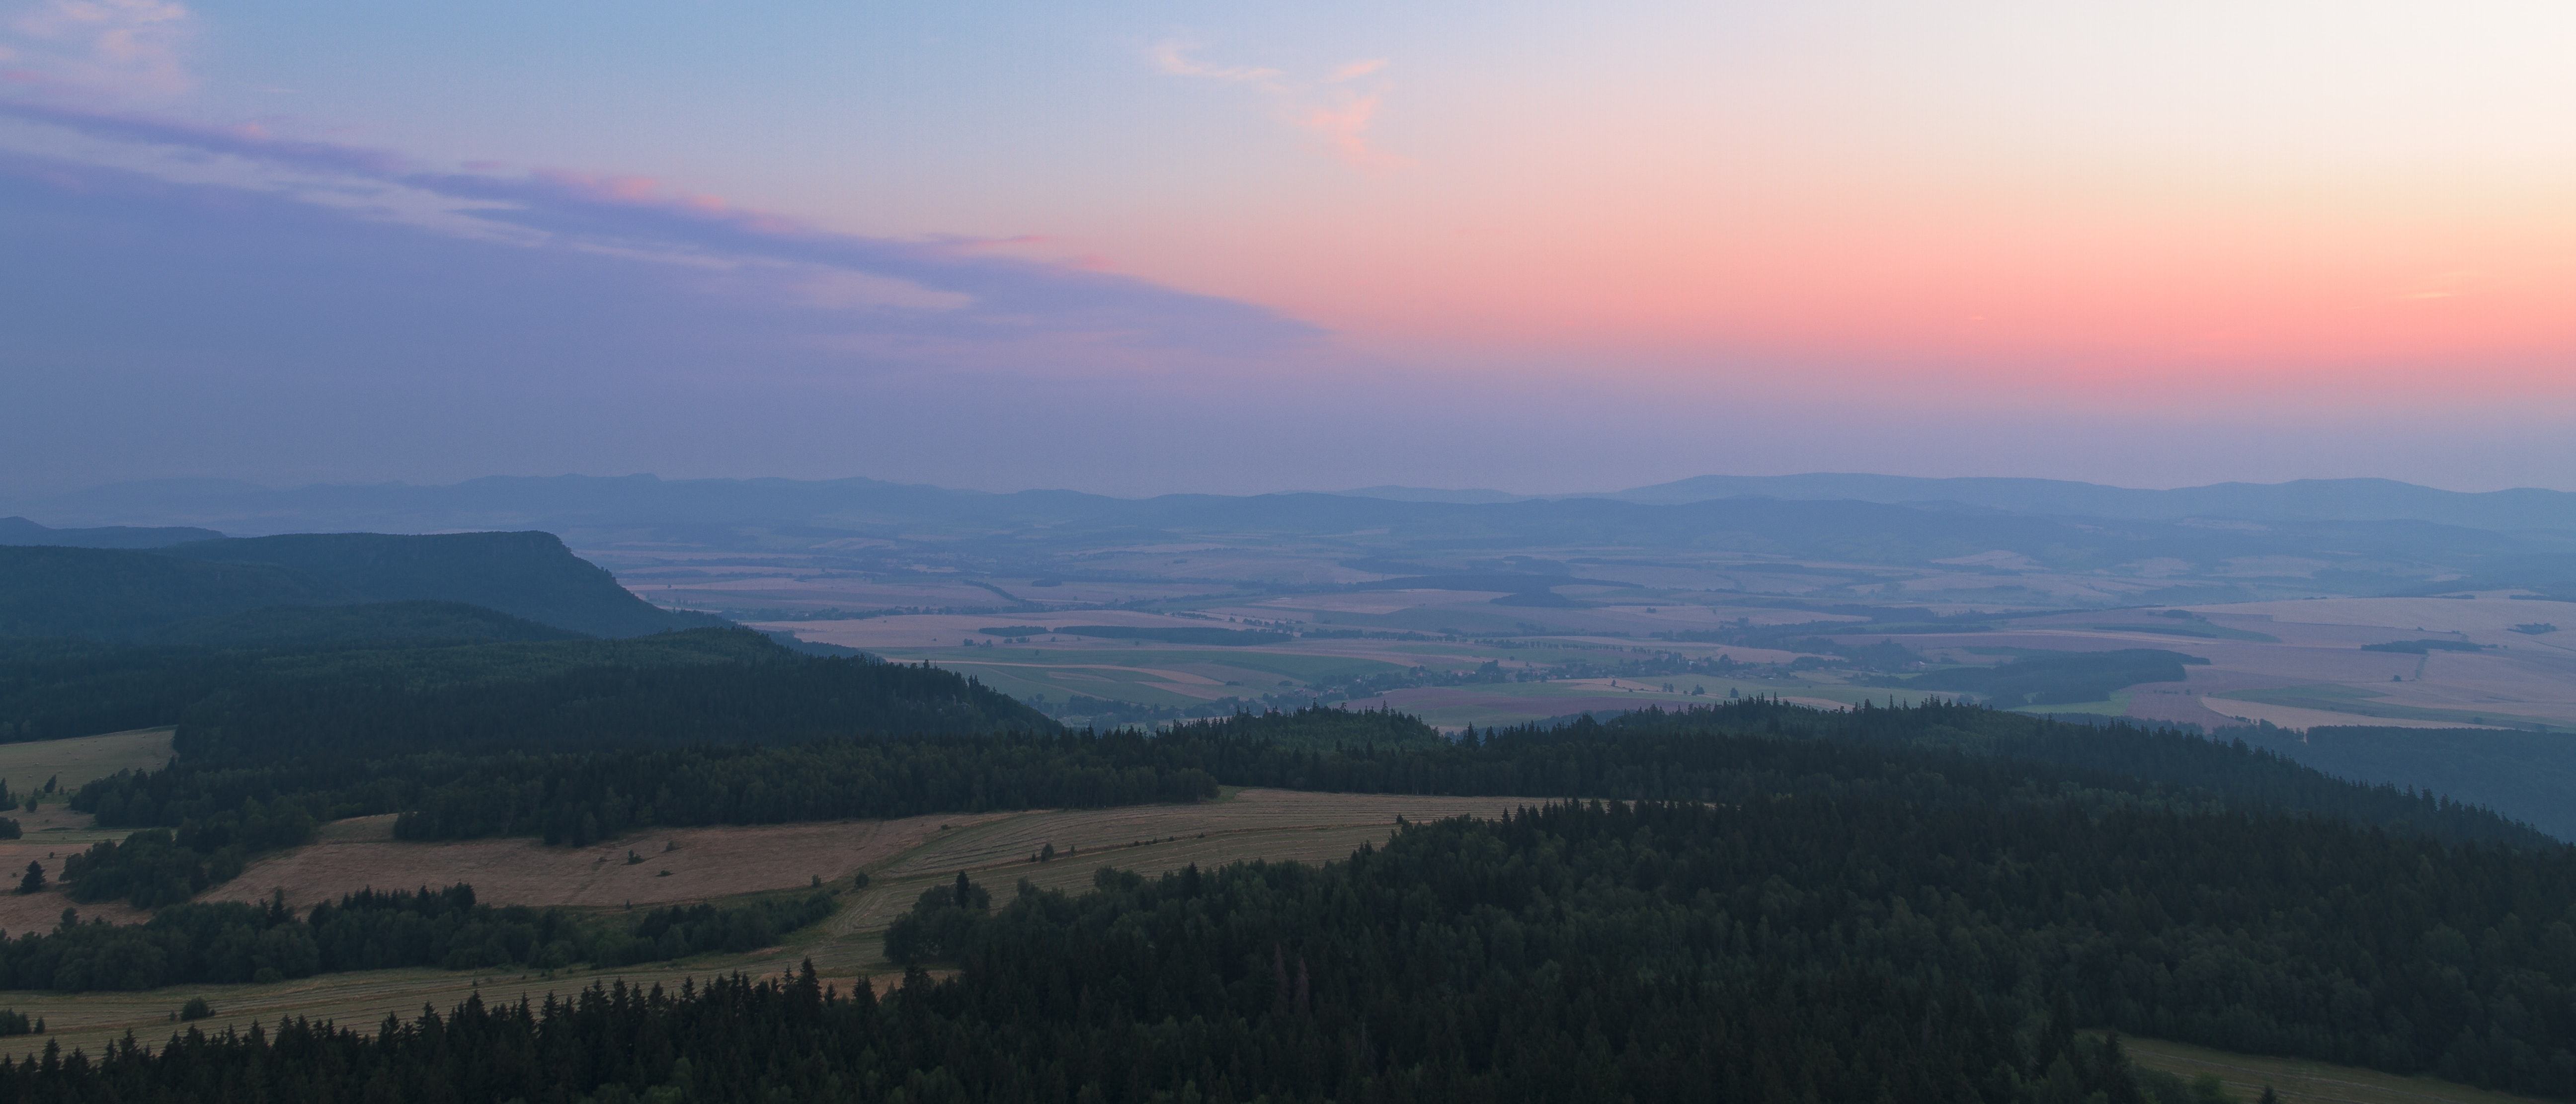 A sunset over the Szczeliniec Wielki landscape and forest